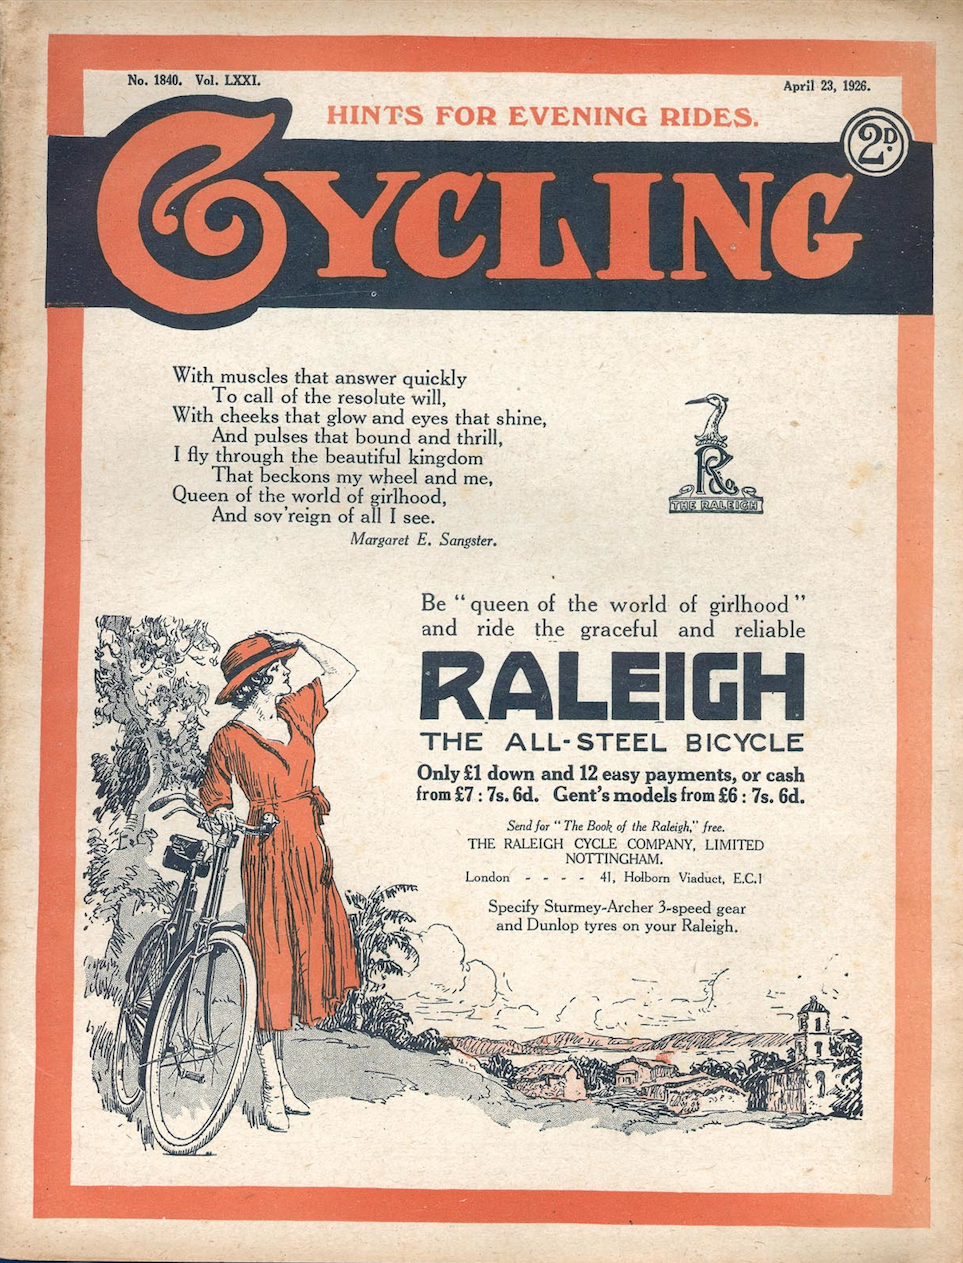 """Queen of the World of Girlhood"" - Raleigh ad on cover of Cycling magazine, 1926."